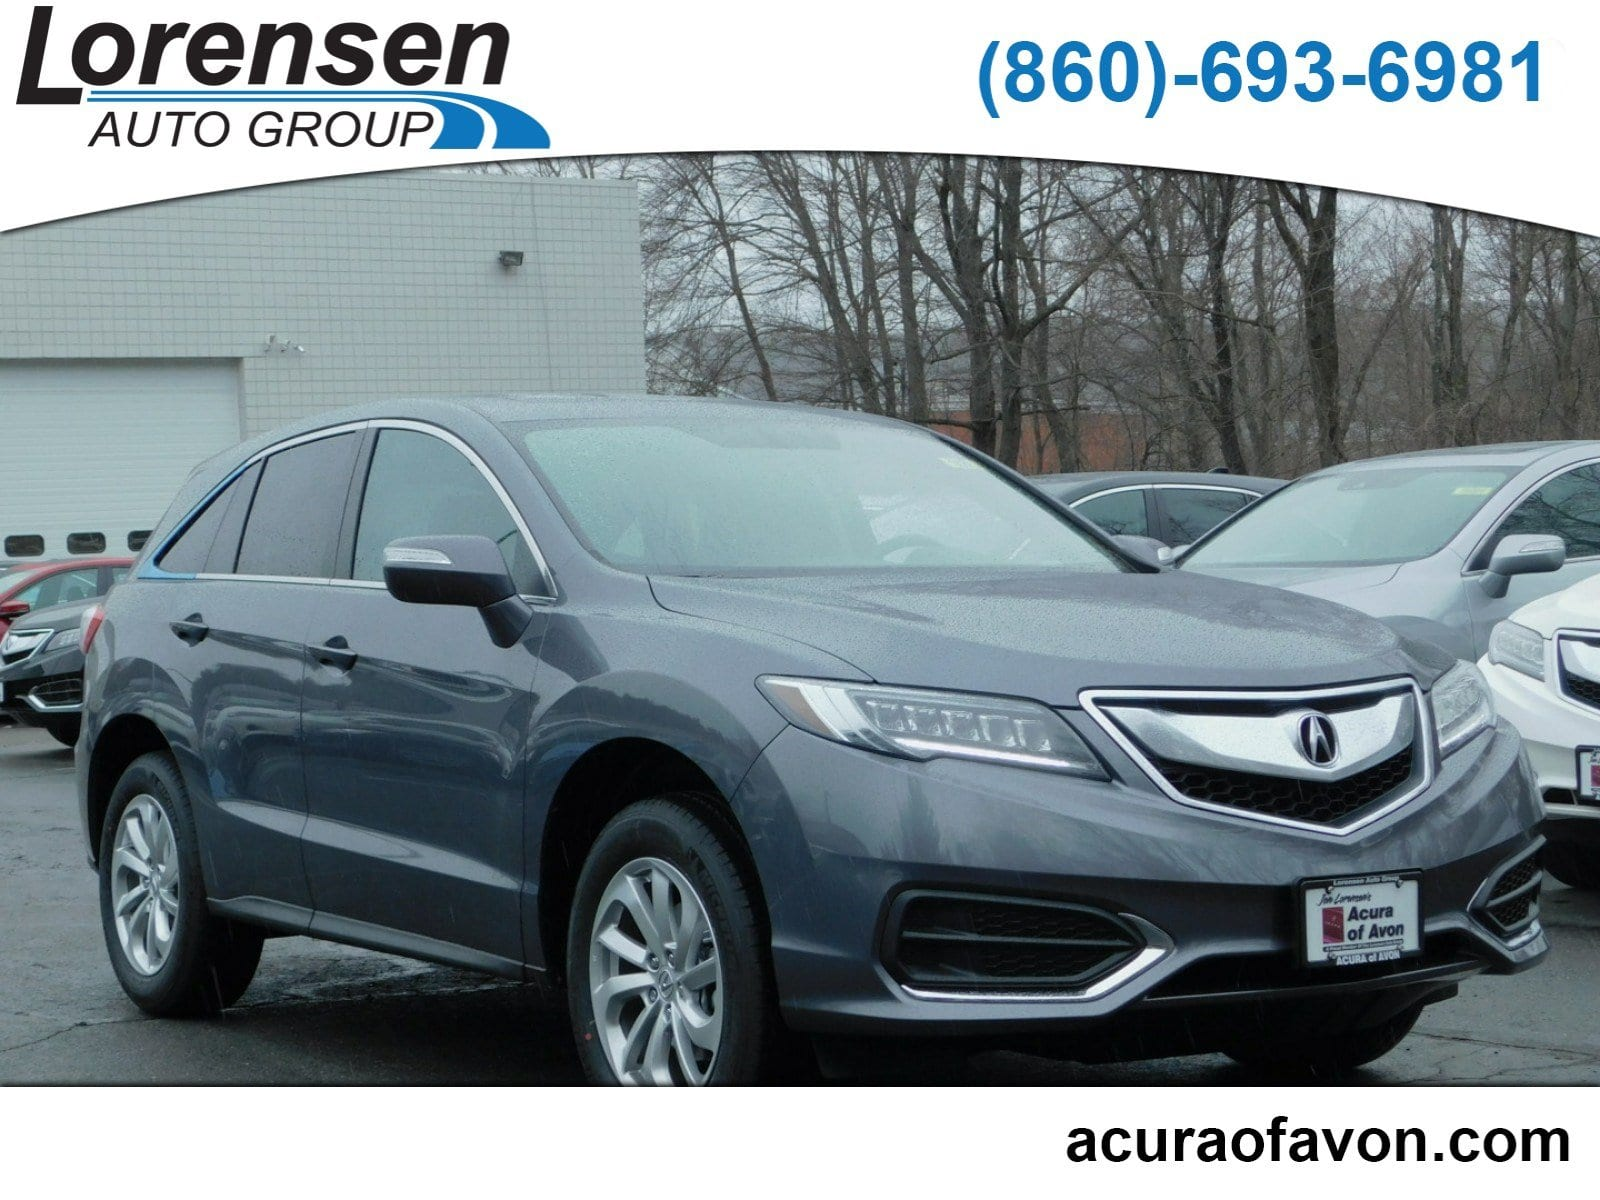 bl sport technology package utility inventory rdx in southern motors acura new with savannah fwd